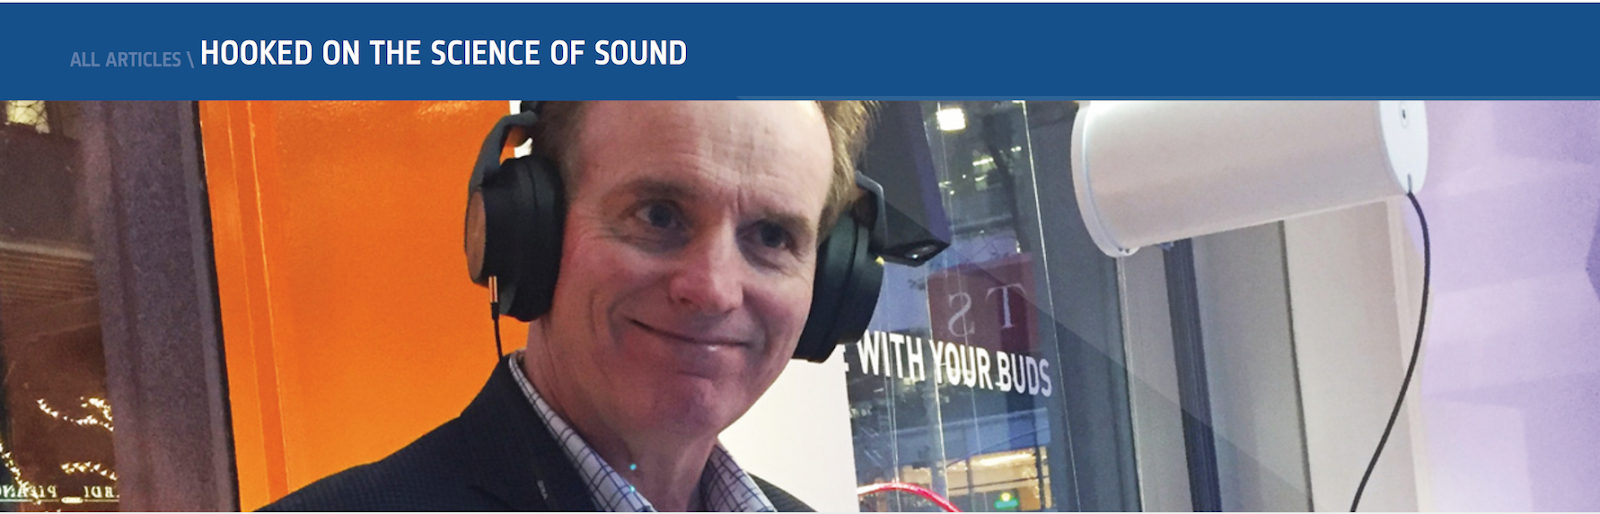 Audio Musings By Sean Olive Abx Double Blind Tester Hooked On The Science Of Sound